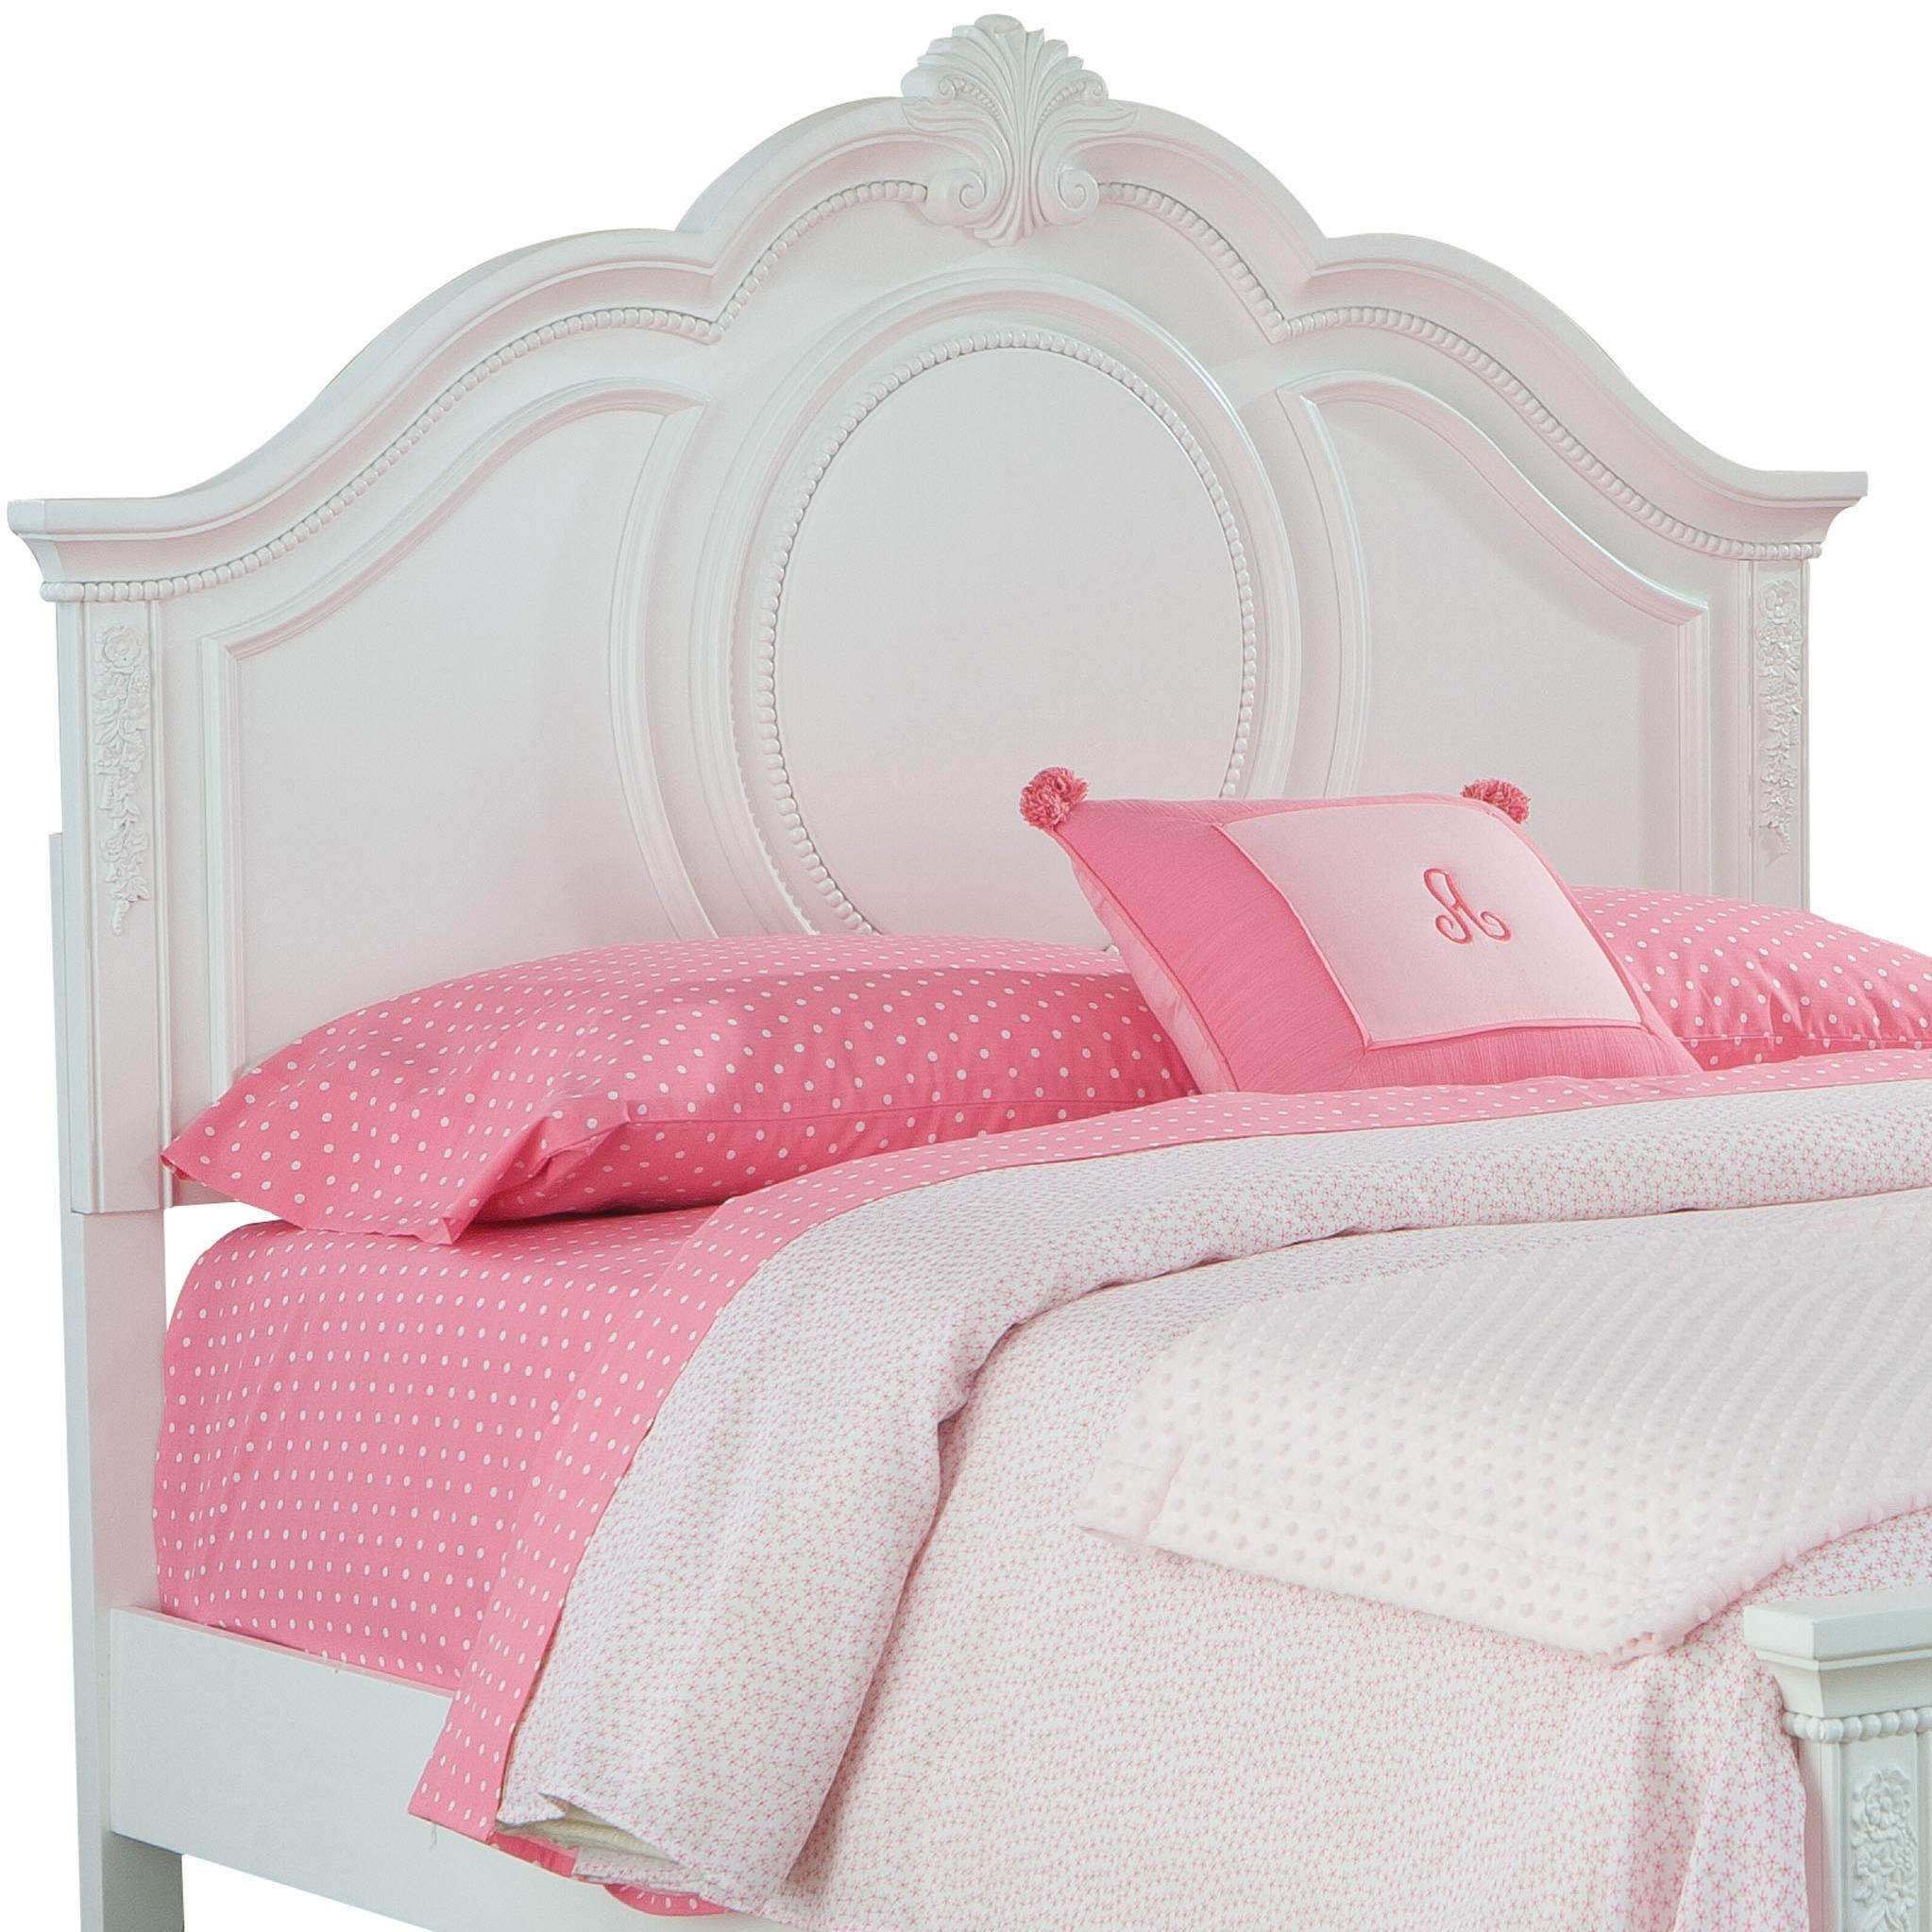 Charmant Standard Furniture Jessica Twin Curvaceous Headboard With Beaded Pearl Trim